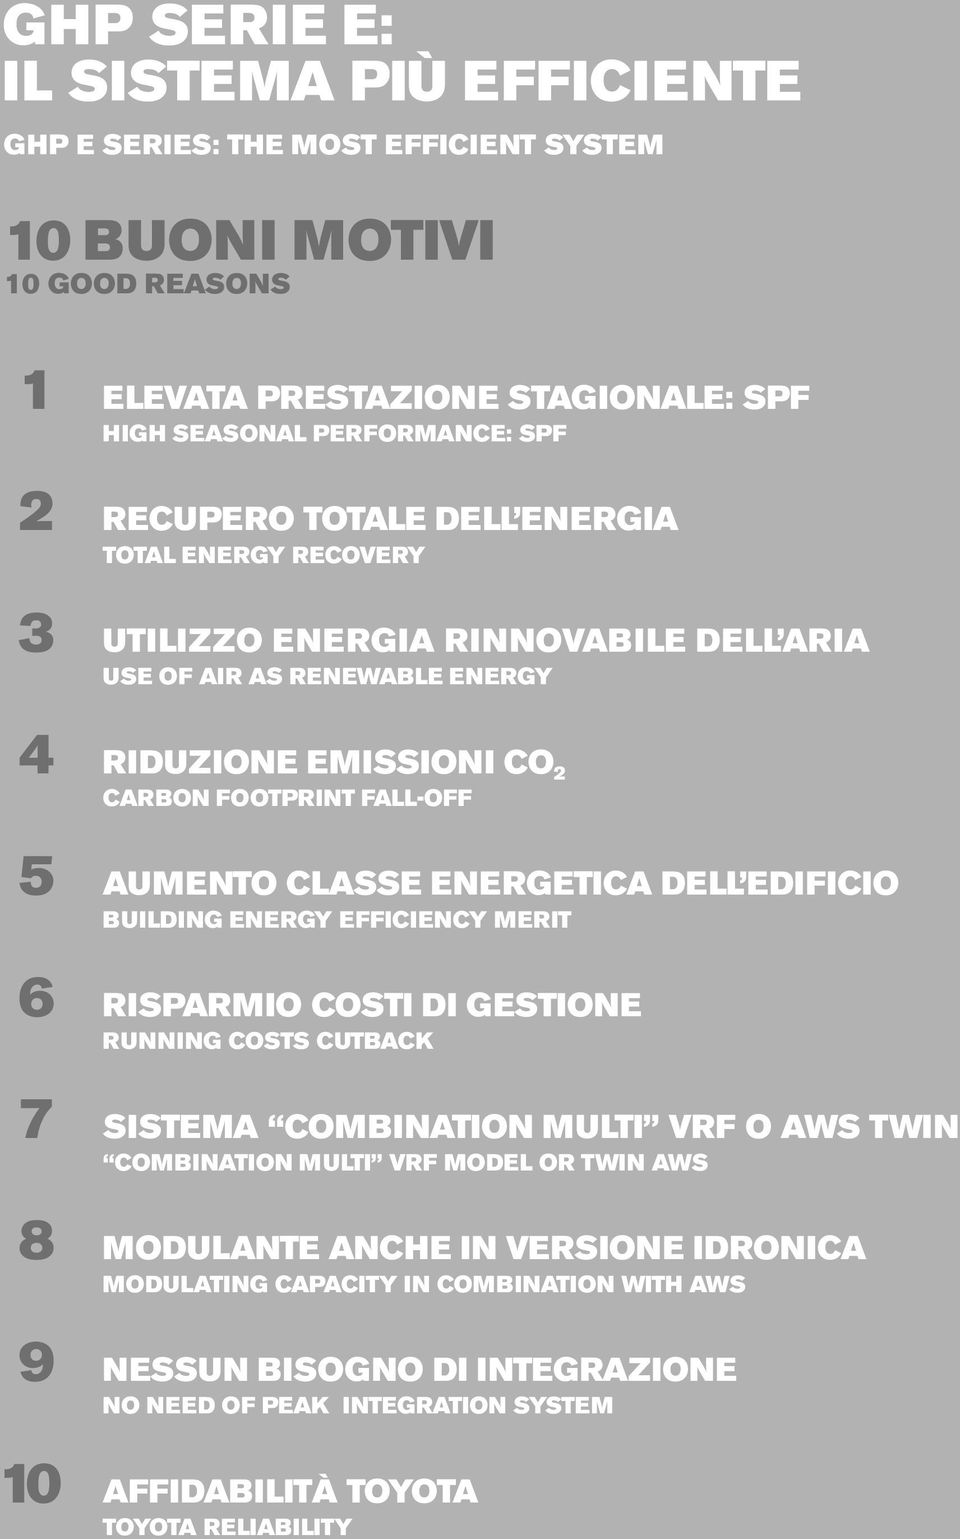 CLASSE ENERGETICA DELL EDIFICIO BUILDING ENERGY EFFICIENCY MERIT 6 RISPARMIO COSTI DI GESTIONE RUNNING COSTS CUTBACK 7 SISTEMA COMBINATION MULTI VRF O AWS TWIN COMBINATION MULTI VRF MODEL